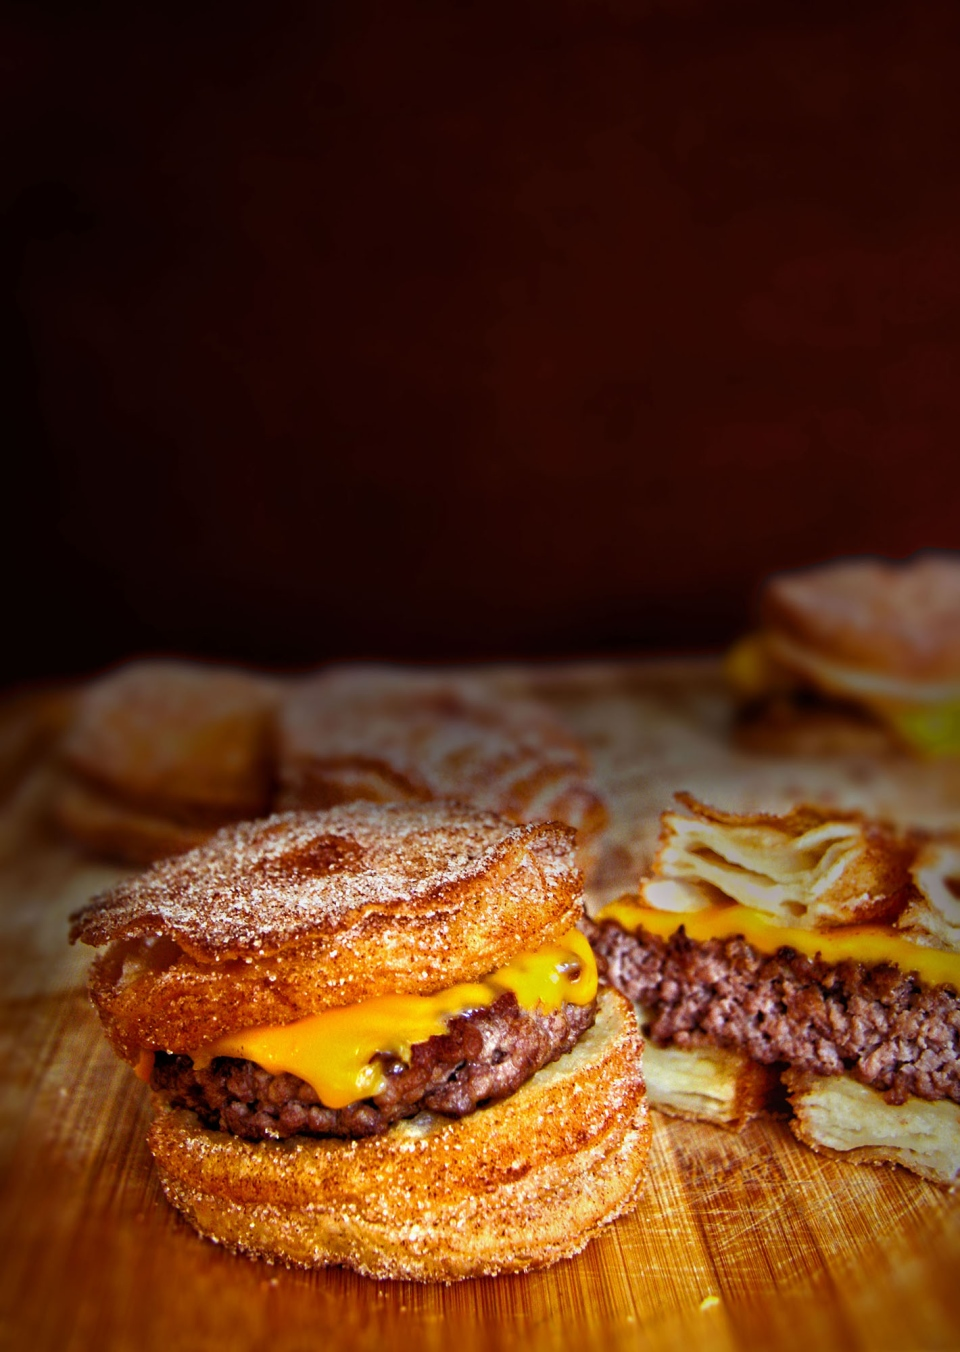 Visitors to the CNE will be able to try the cronut burger. (CNW Group / Le Dolci)